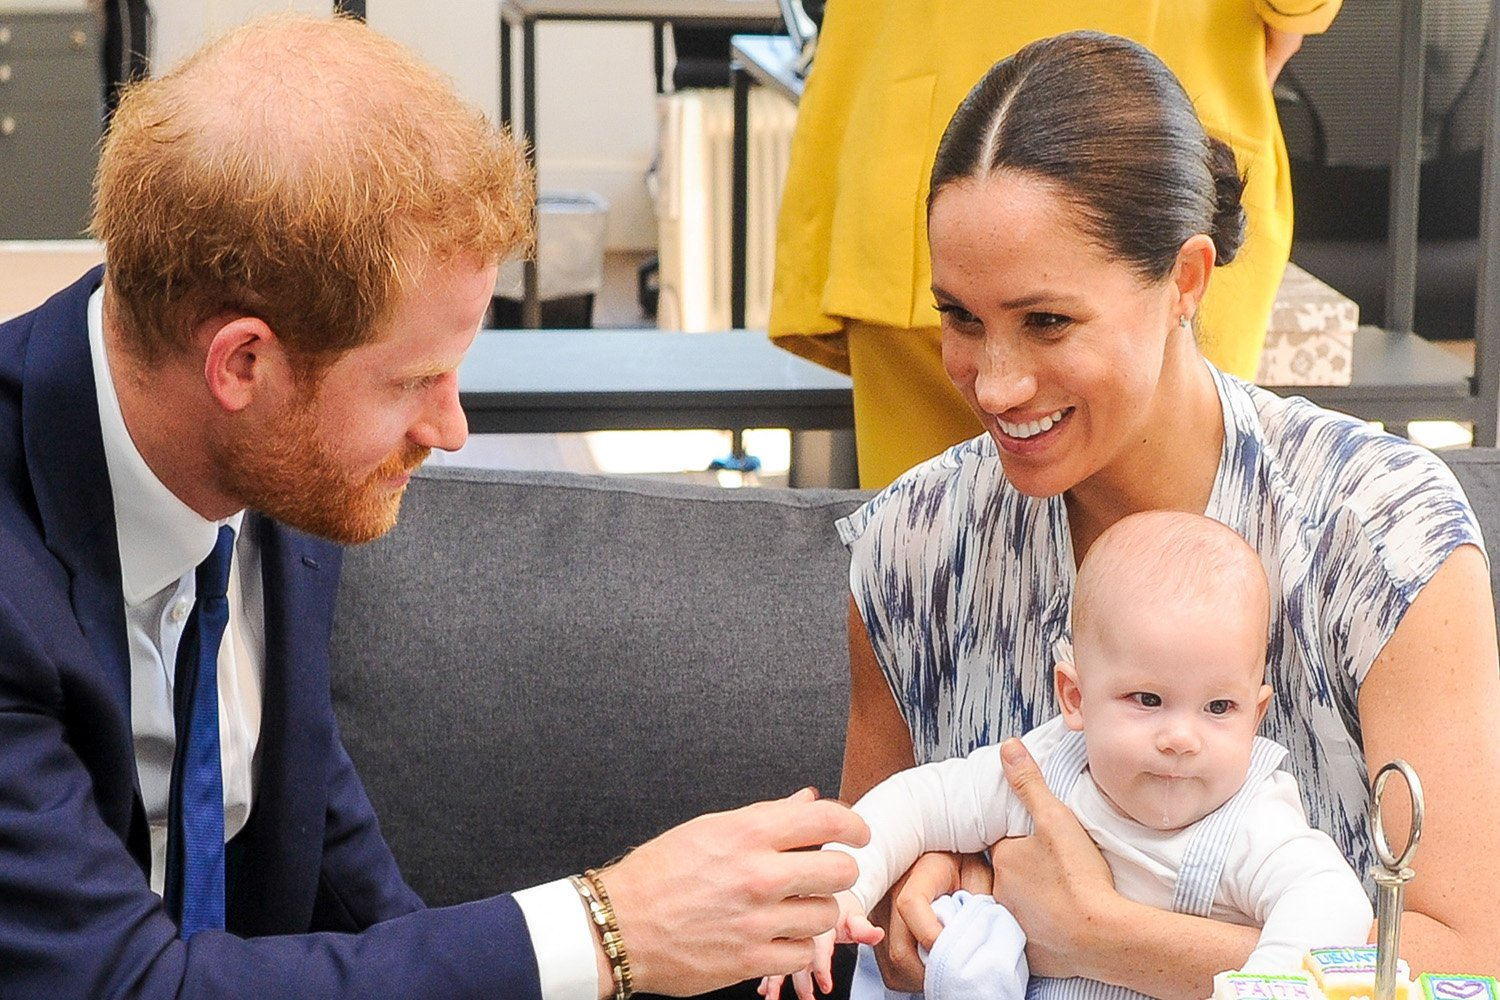 https://celebritycontent.com/2020/04/28/harry-and-meghan-will-release-new-photo-of-archie-to-mark-his-first-birthday-entertainment-daily/